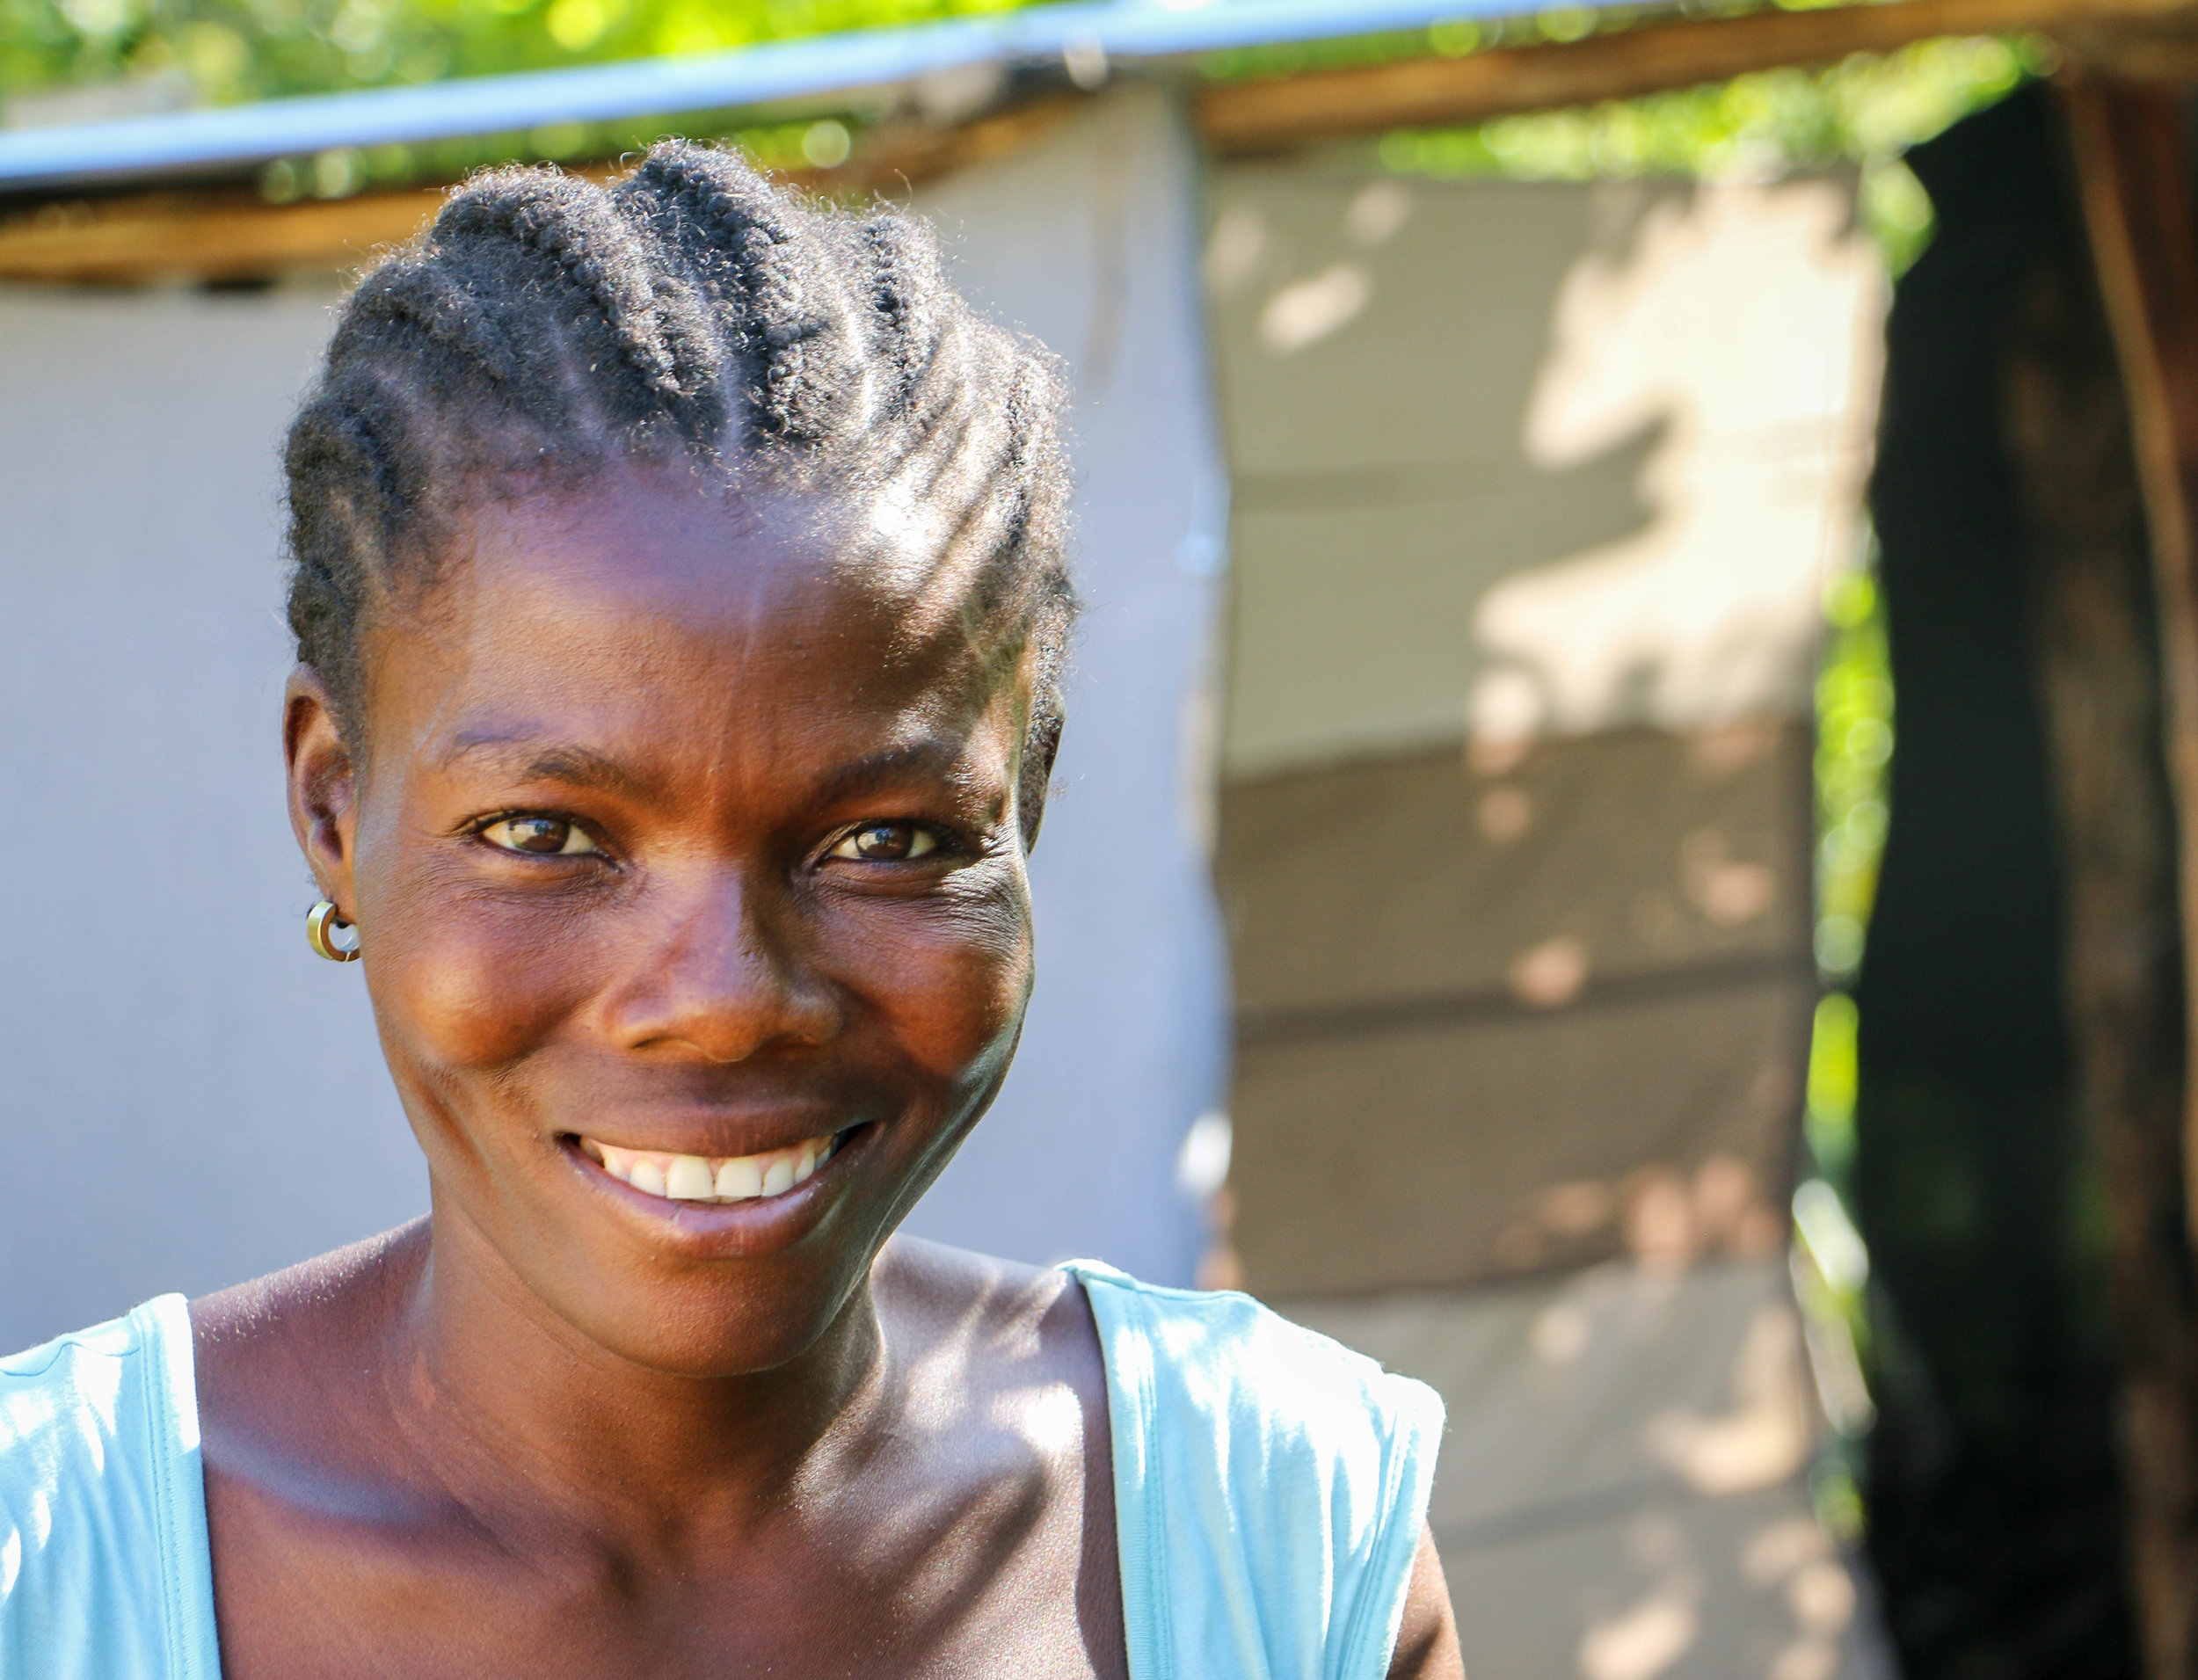 Andrenya Charl, Kabay, Haiti, was a one of 181 families who built latrines for their homes in this MCC supported project. August 2017